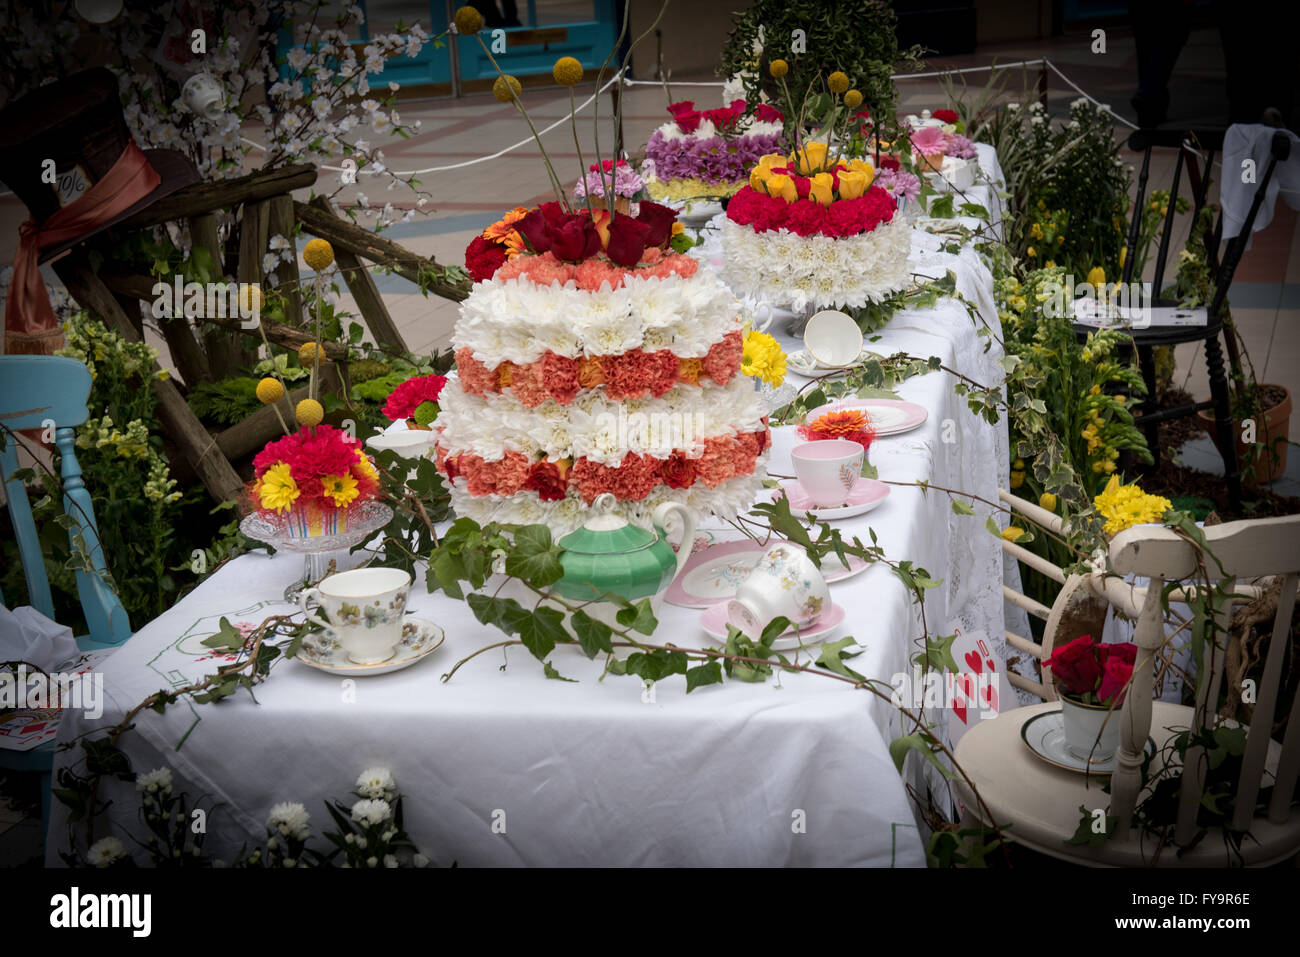 Mad Hatter Tea Party Table - Mad hatter tea party table feast floral cakes at cake international the sugarcraft cake decorating and baking show in london